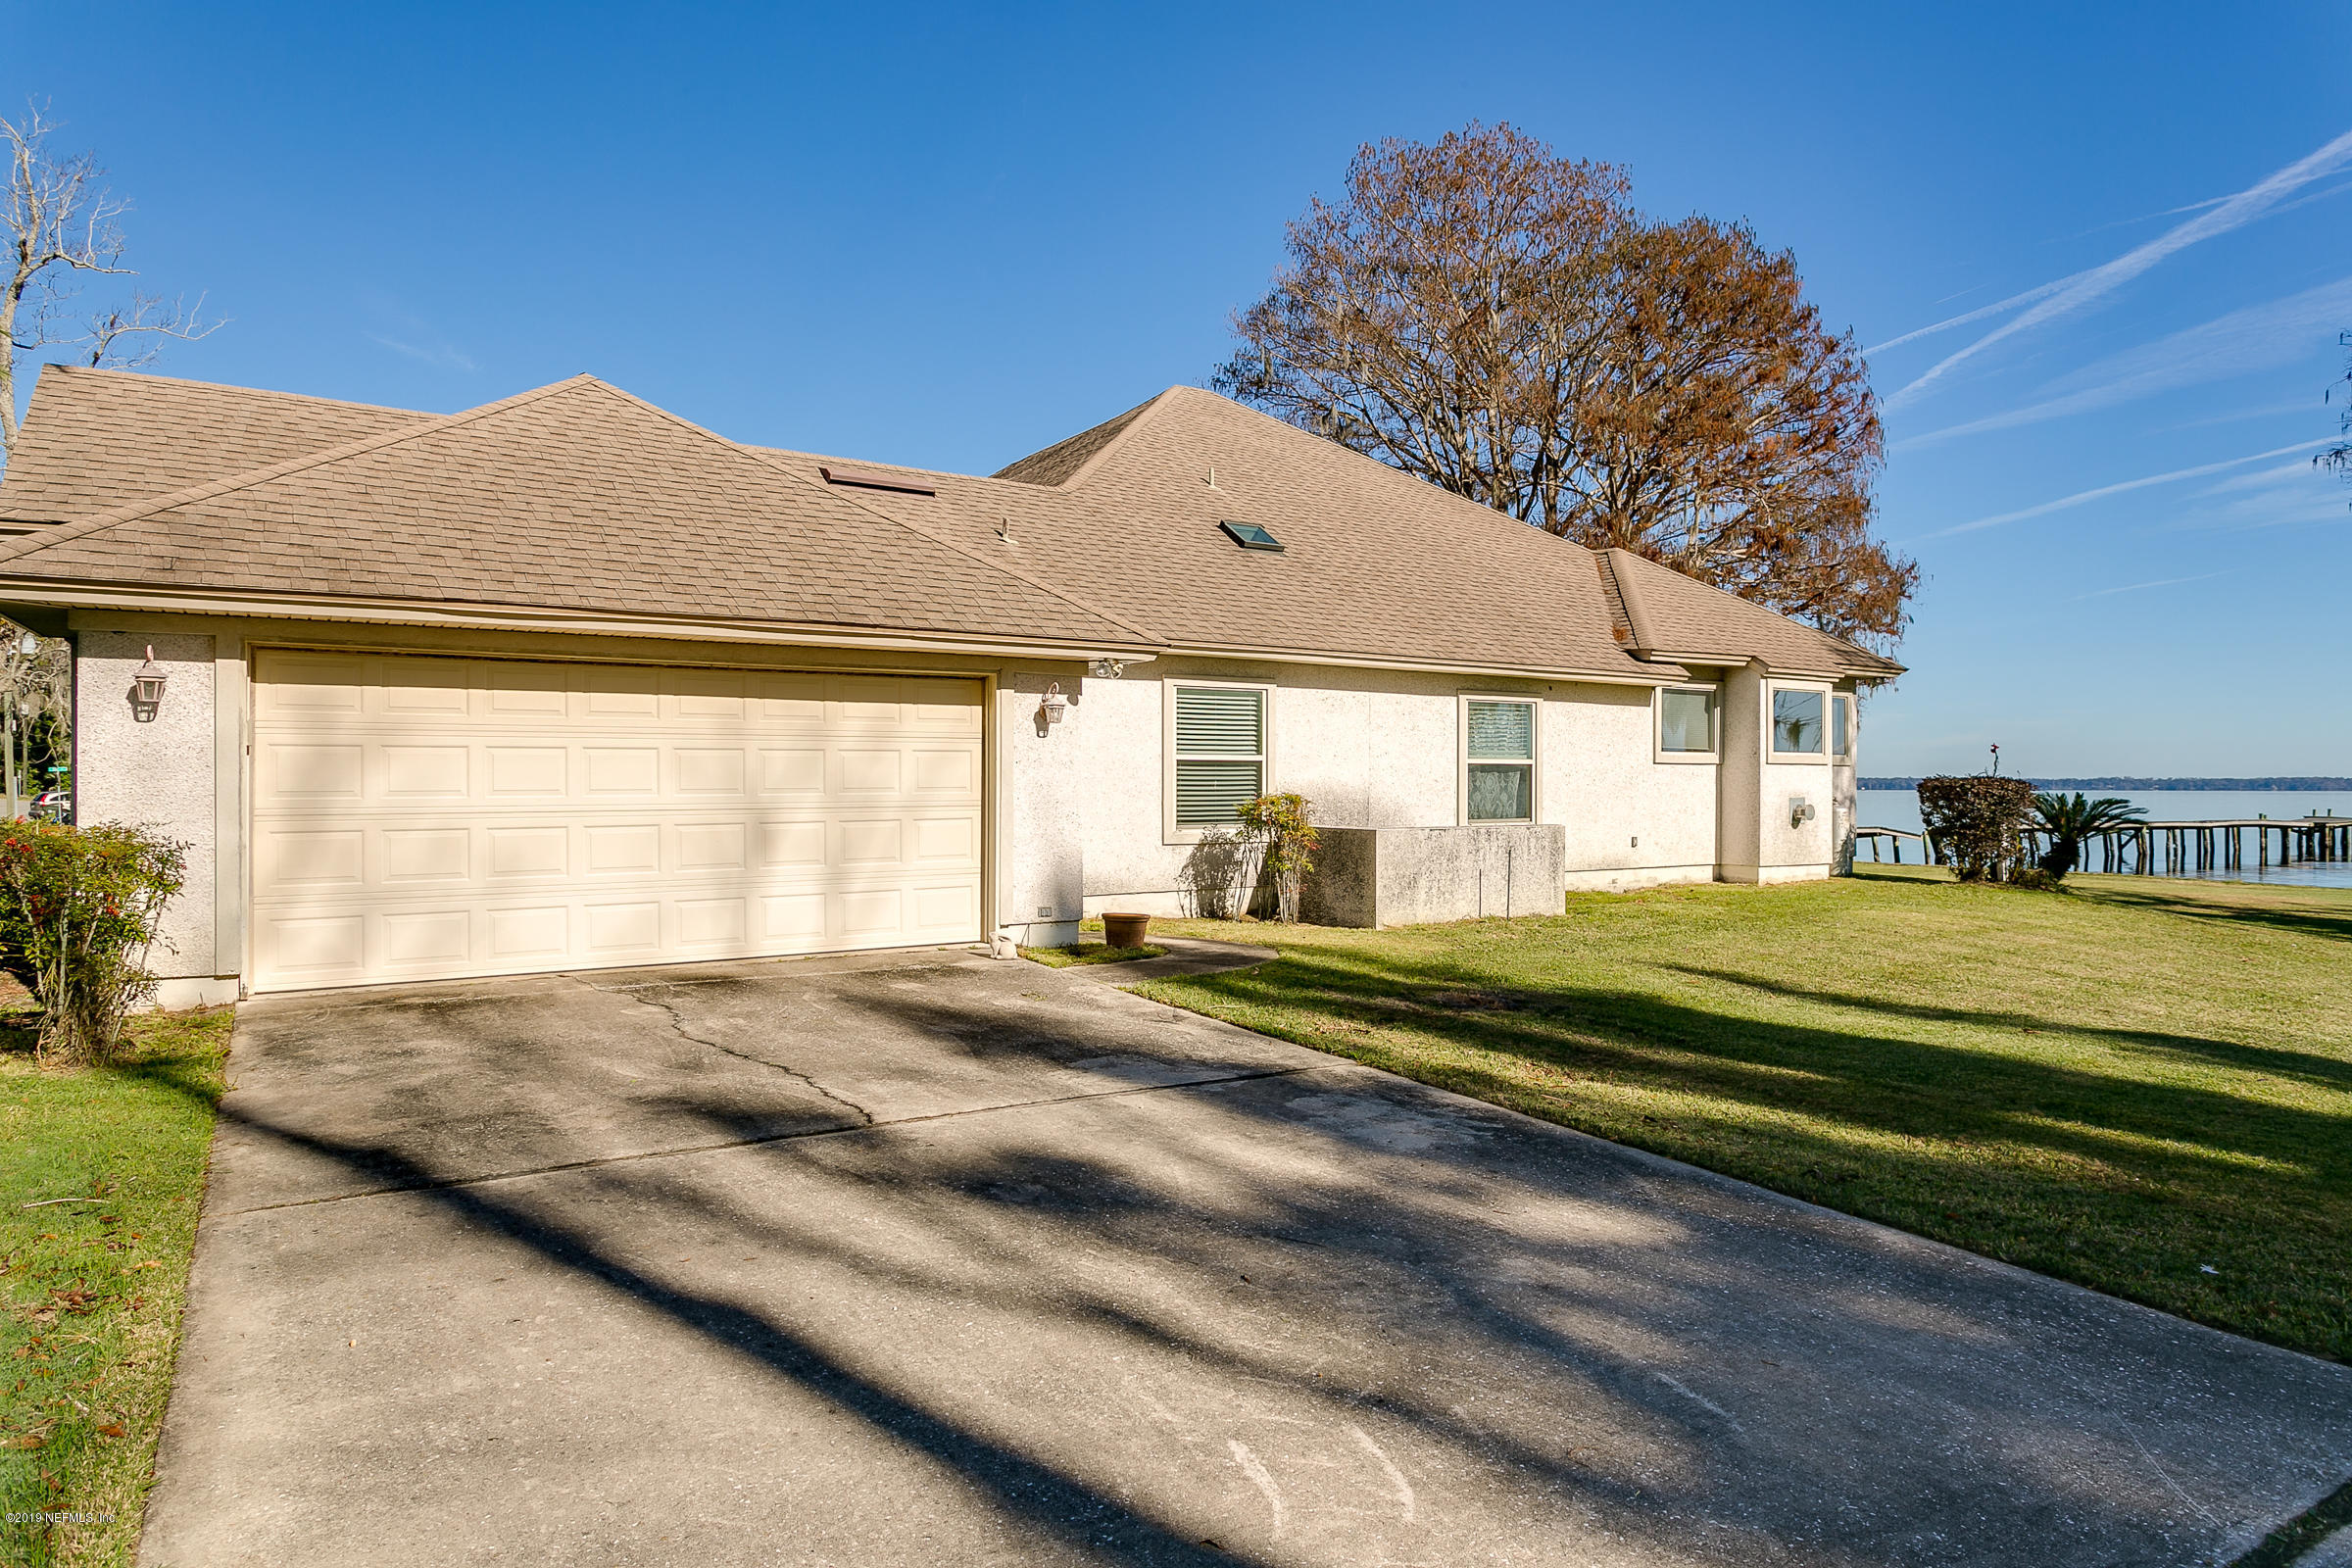 300 ST JOHNS, GREEN COVE SPRINGS, FLORIDA 32043, 3 Bedrooms Bedrooms, ,2 BathroomsBathrooms,Residential,For sale,ST JOHNS,1082766